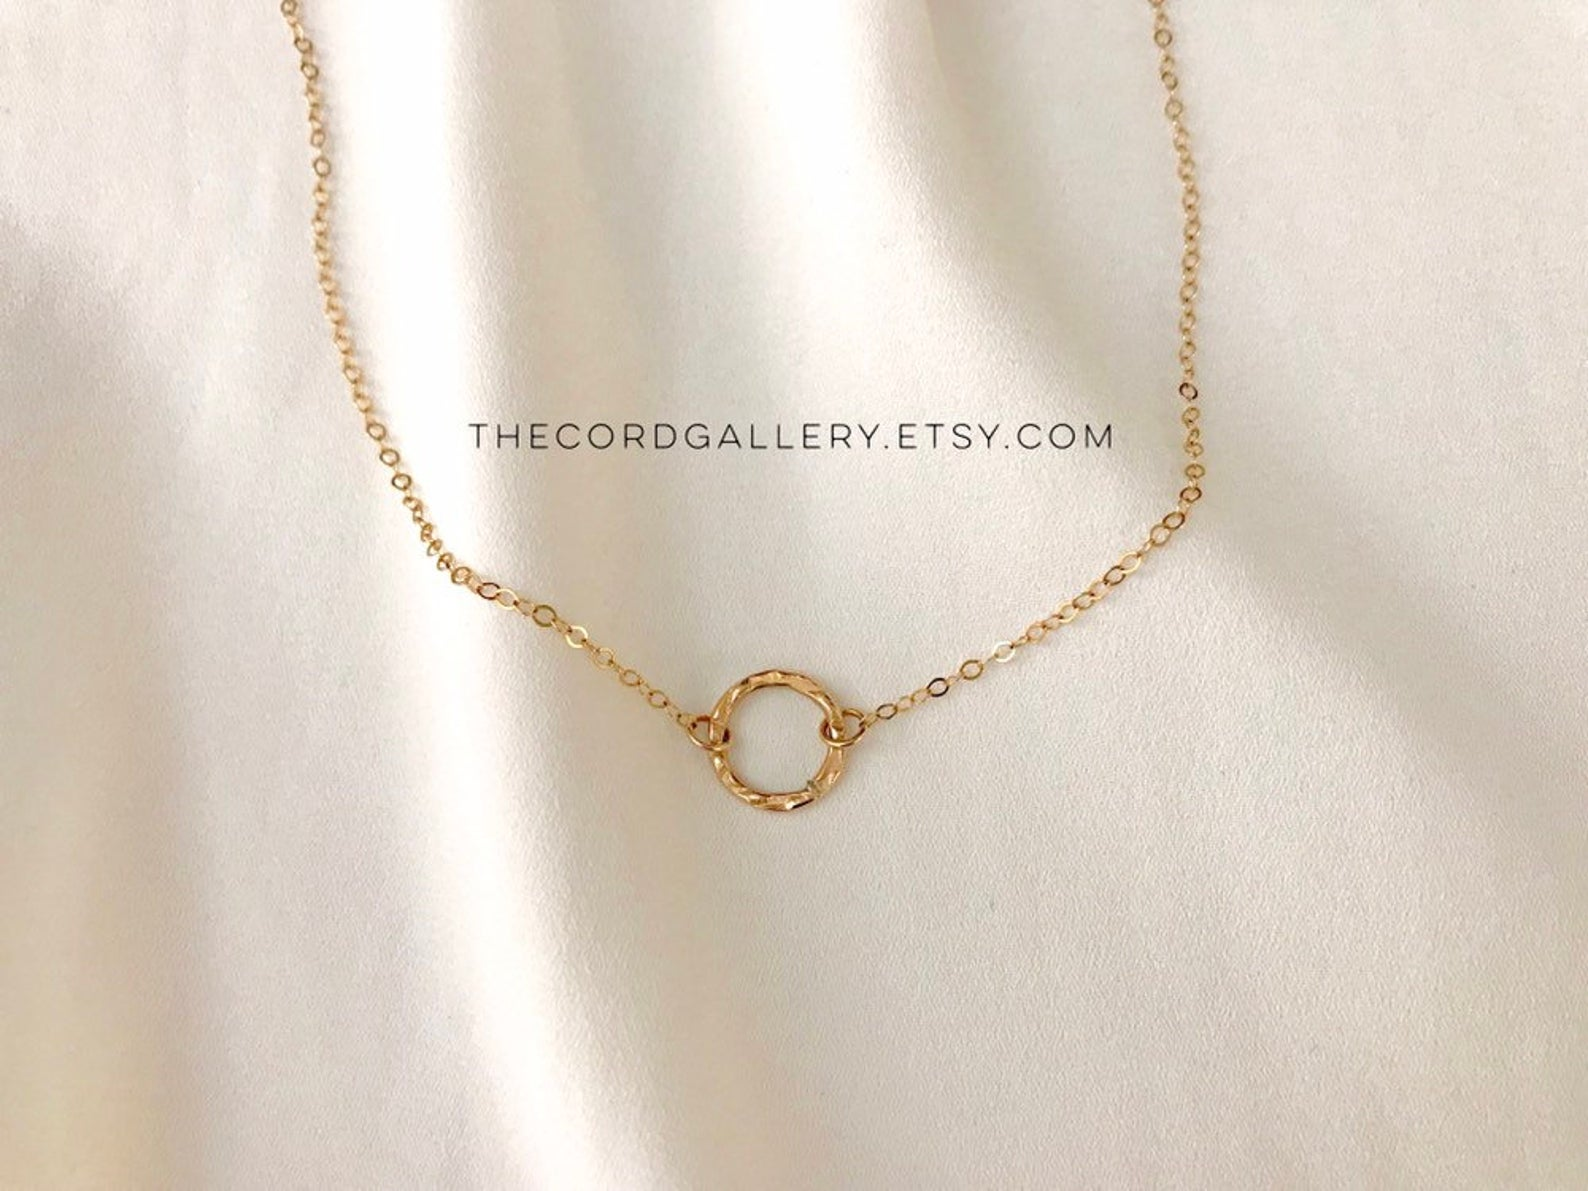 Dainty Gold Filled Hammered Circle Pendant Necklace